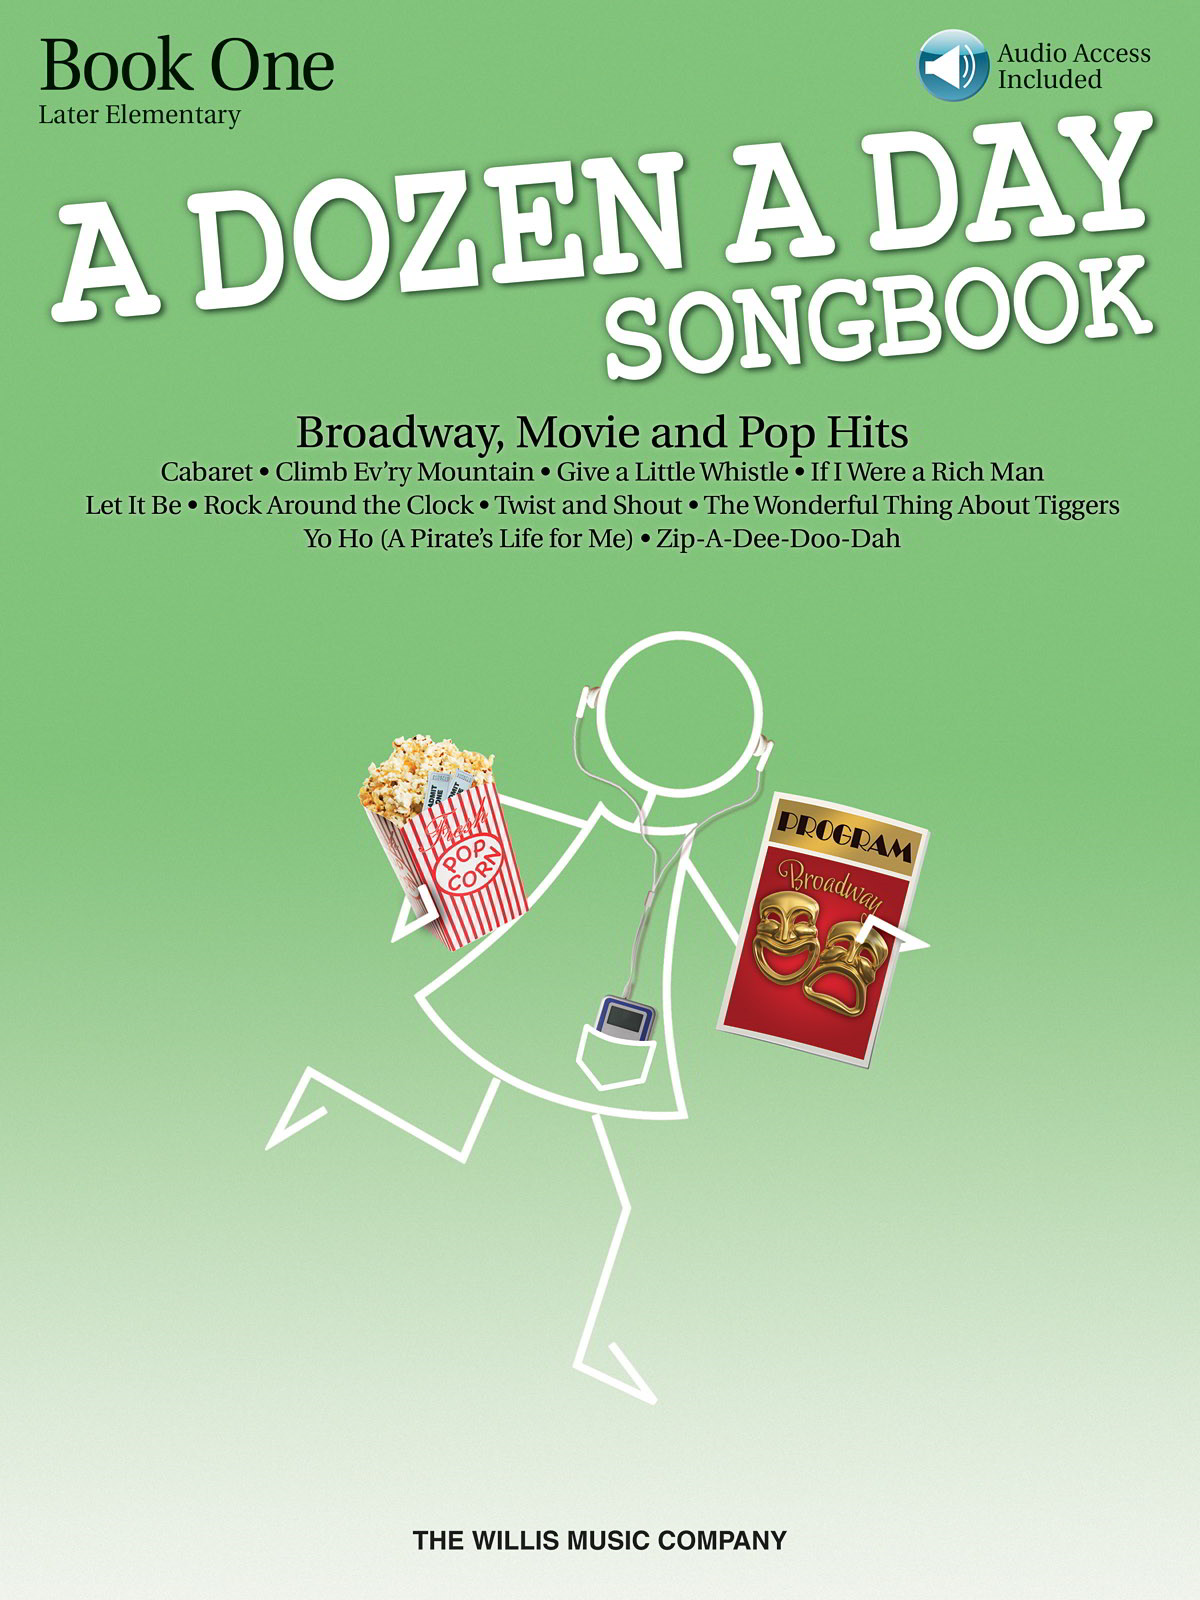 A Dozen A Day Songbook: Book 1 - Later Elementary for Piano published by Willis (Book/Online Audio)